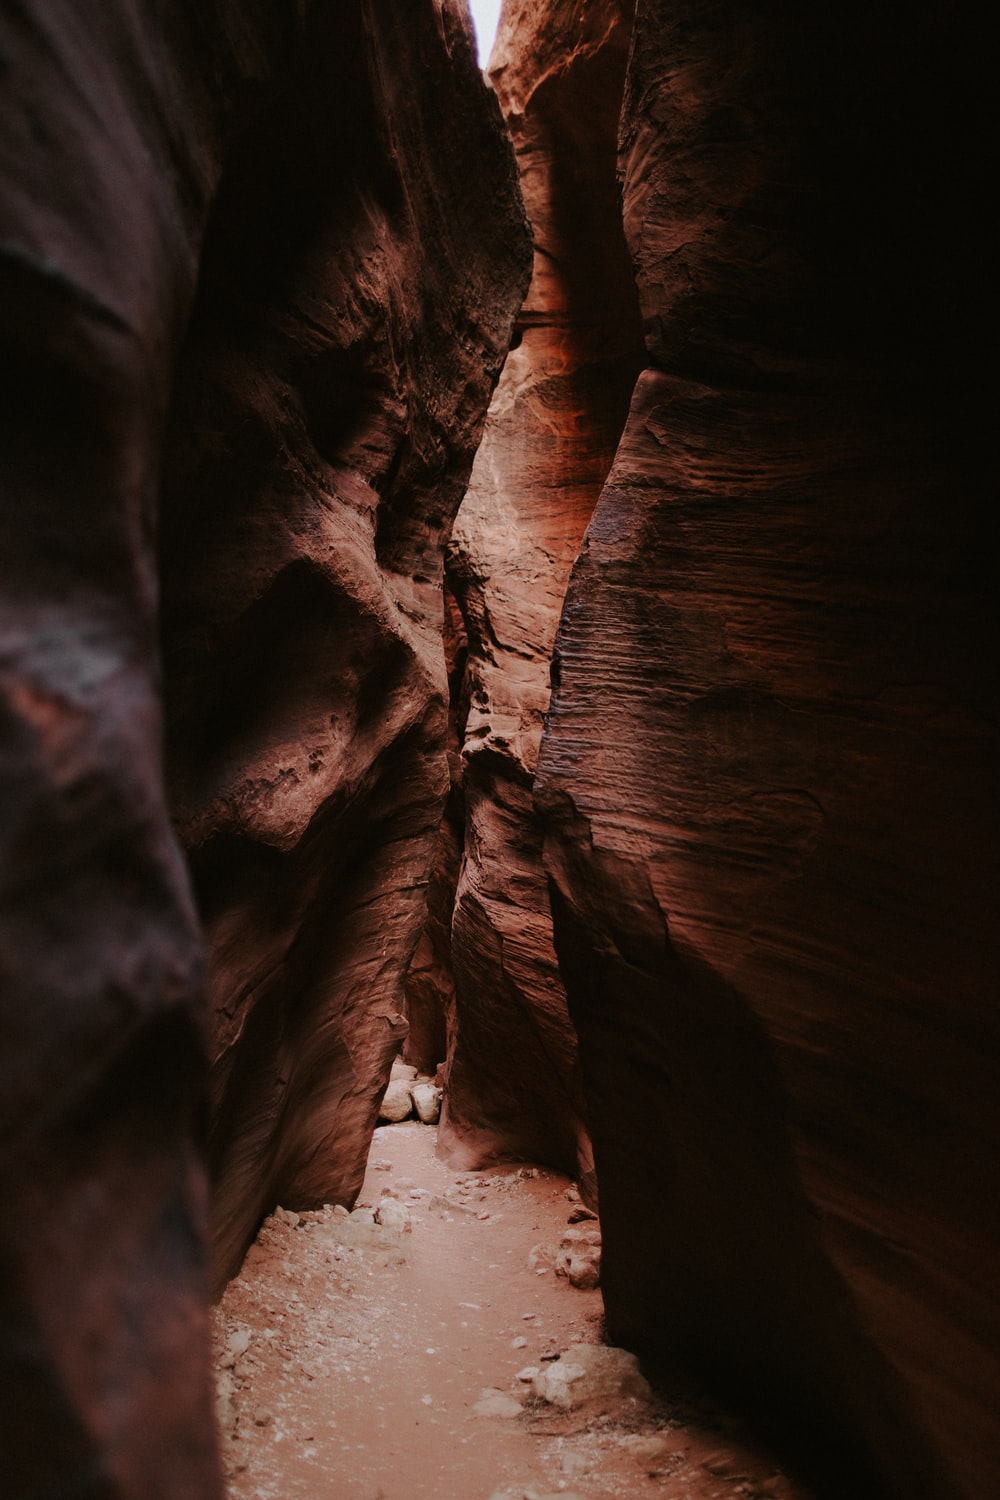 brown cave at daytime photo